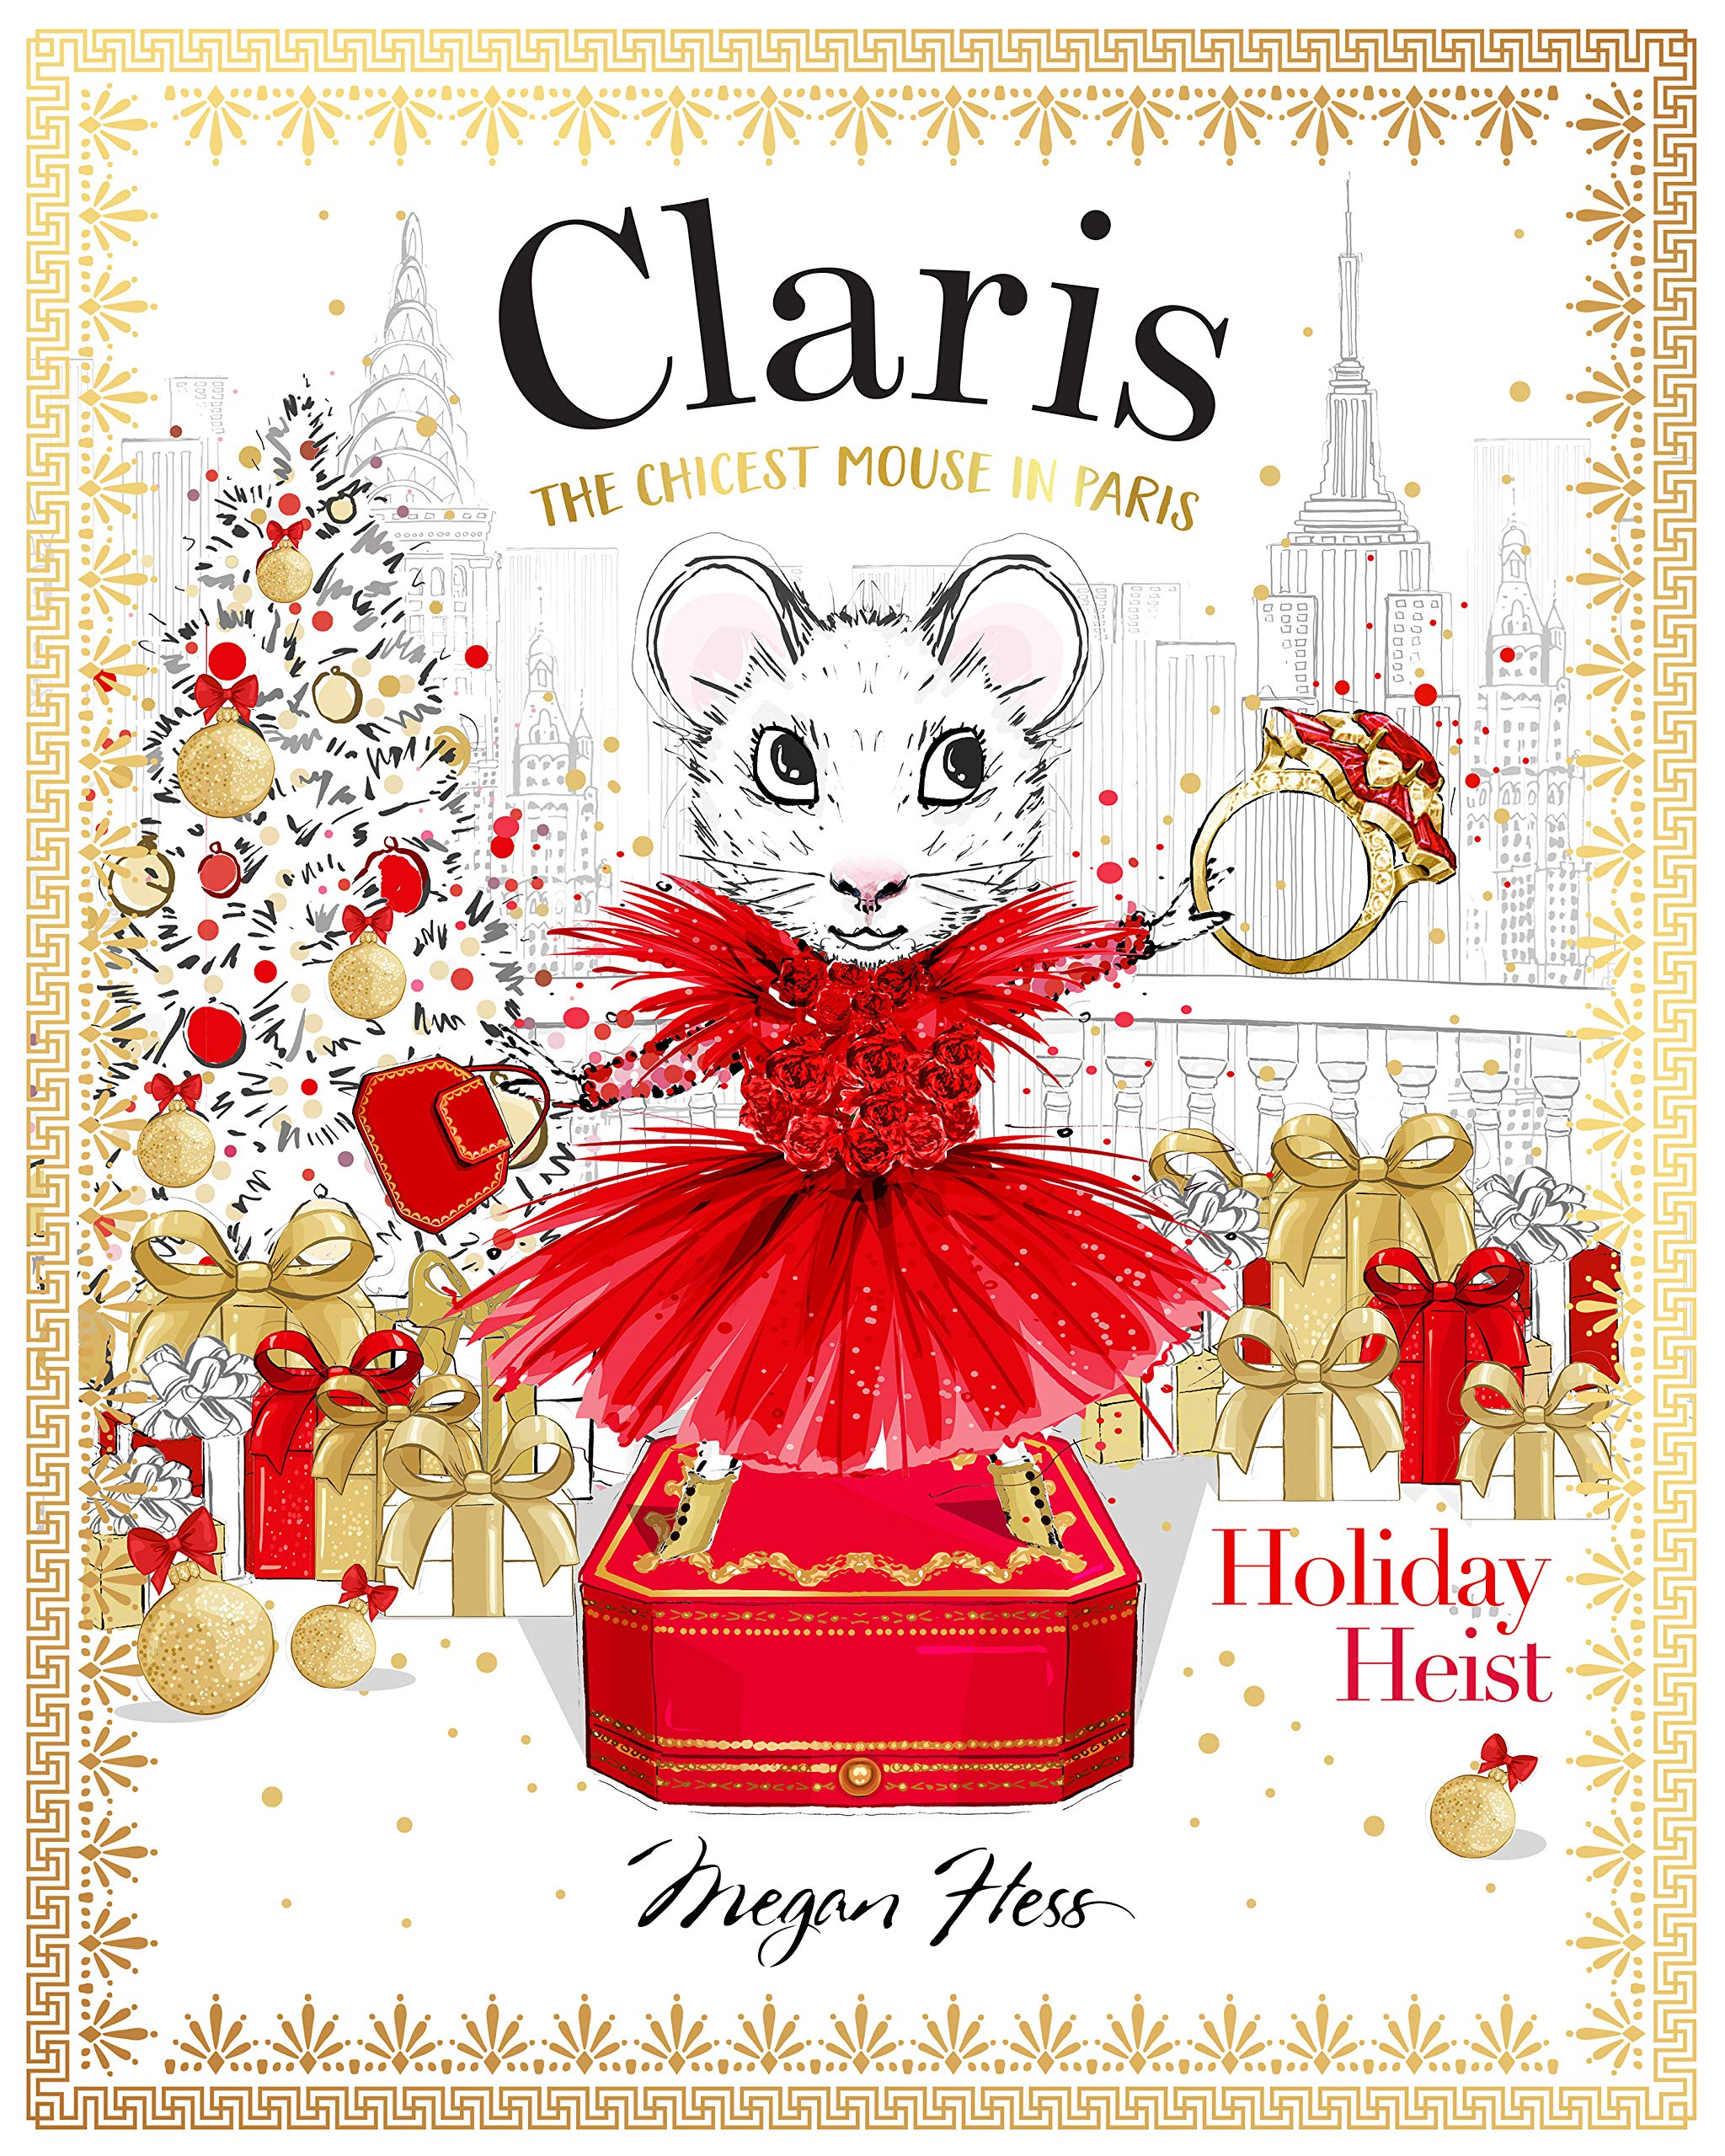 Claris: Holiday Heist: The Chicest Mouse in Paris Book Cover